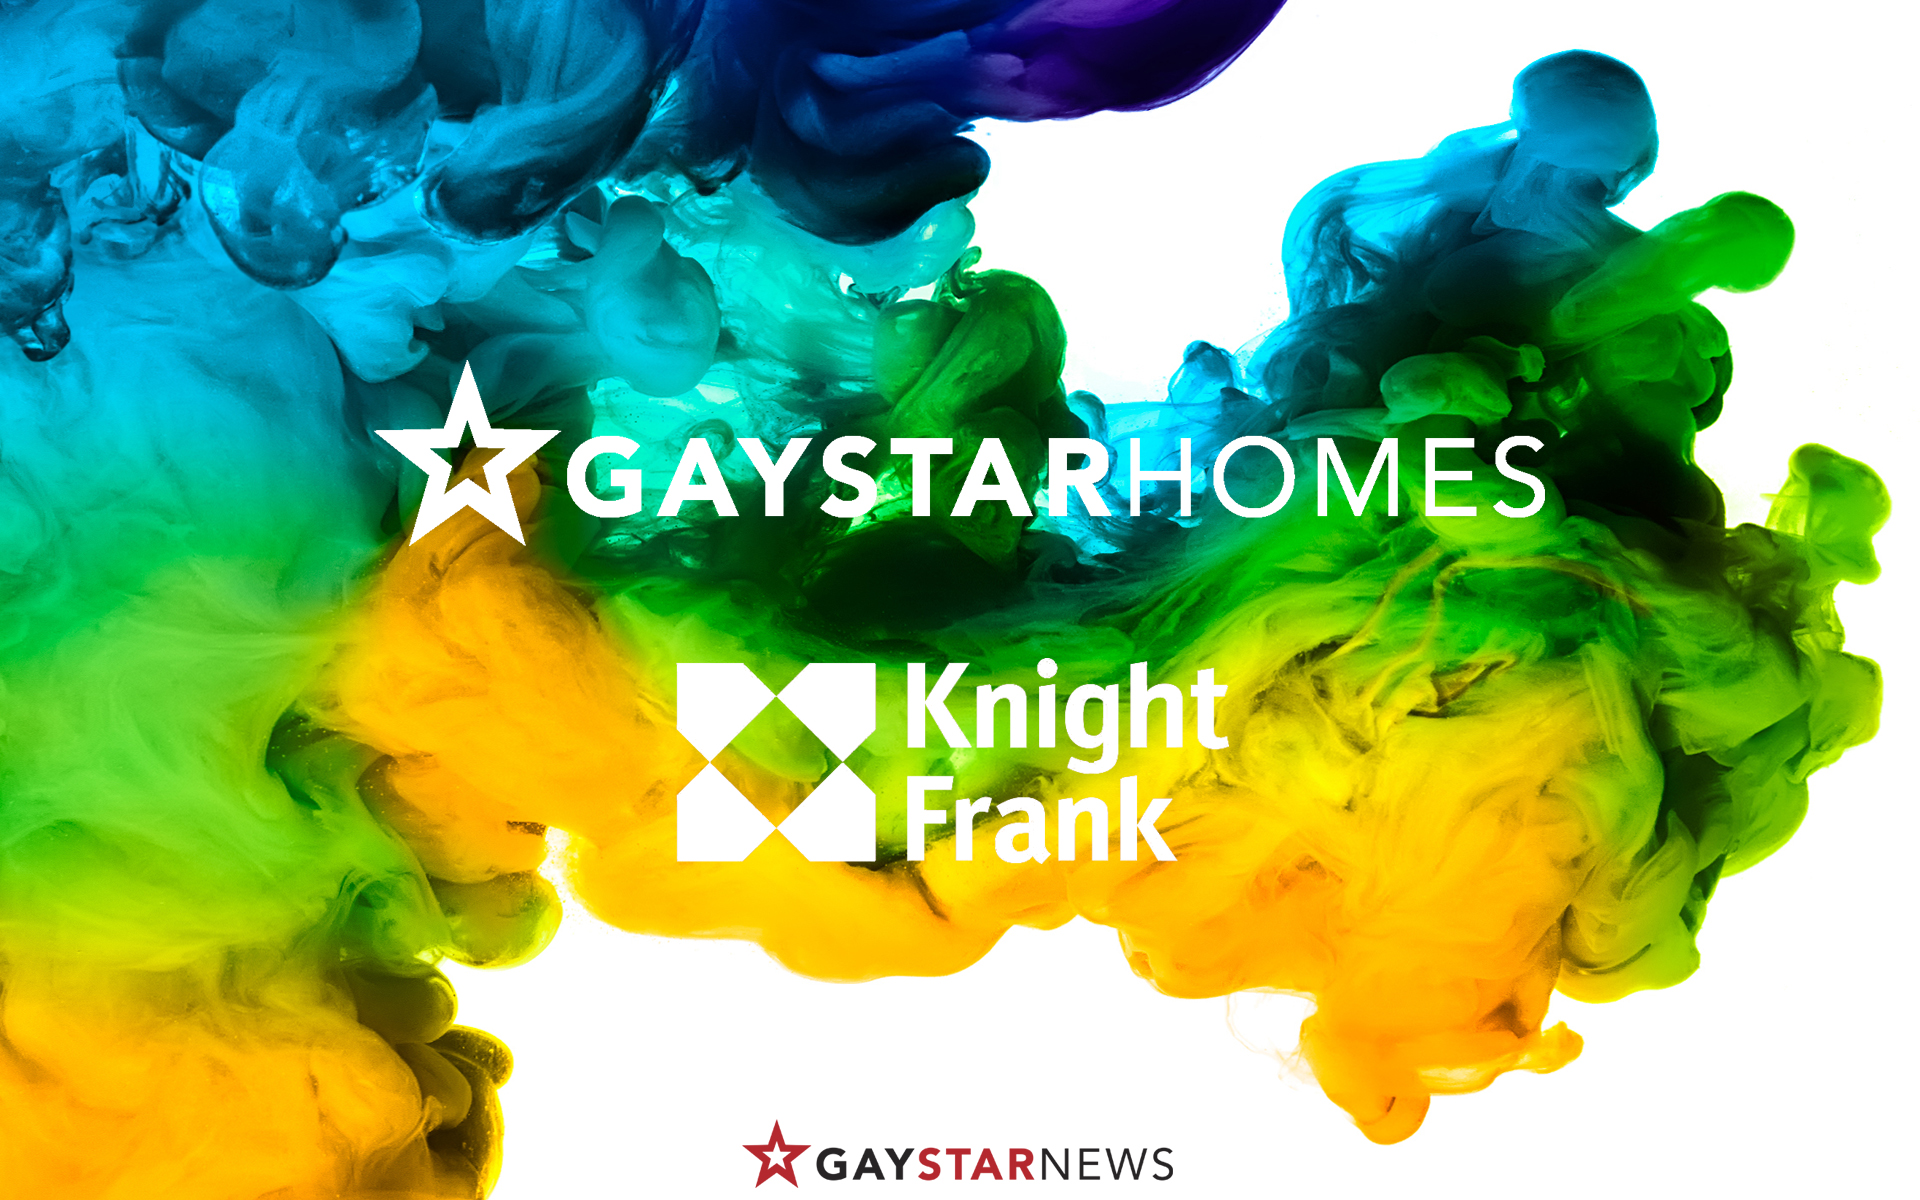 Gay Star Homes works in partnership with Knight Frank